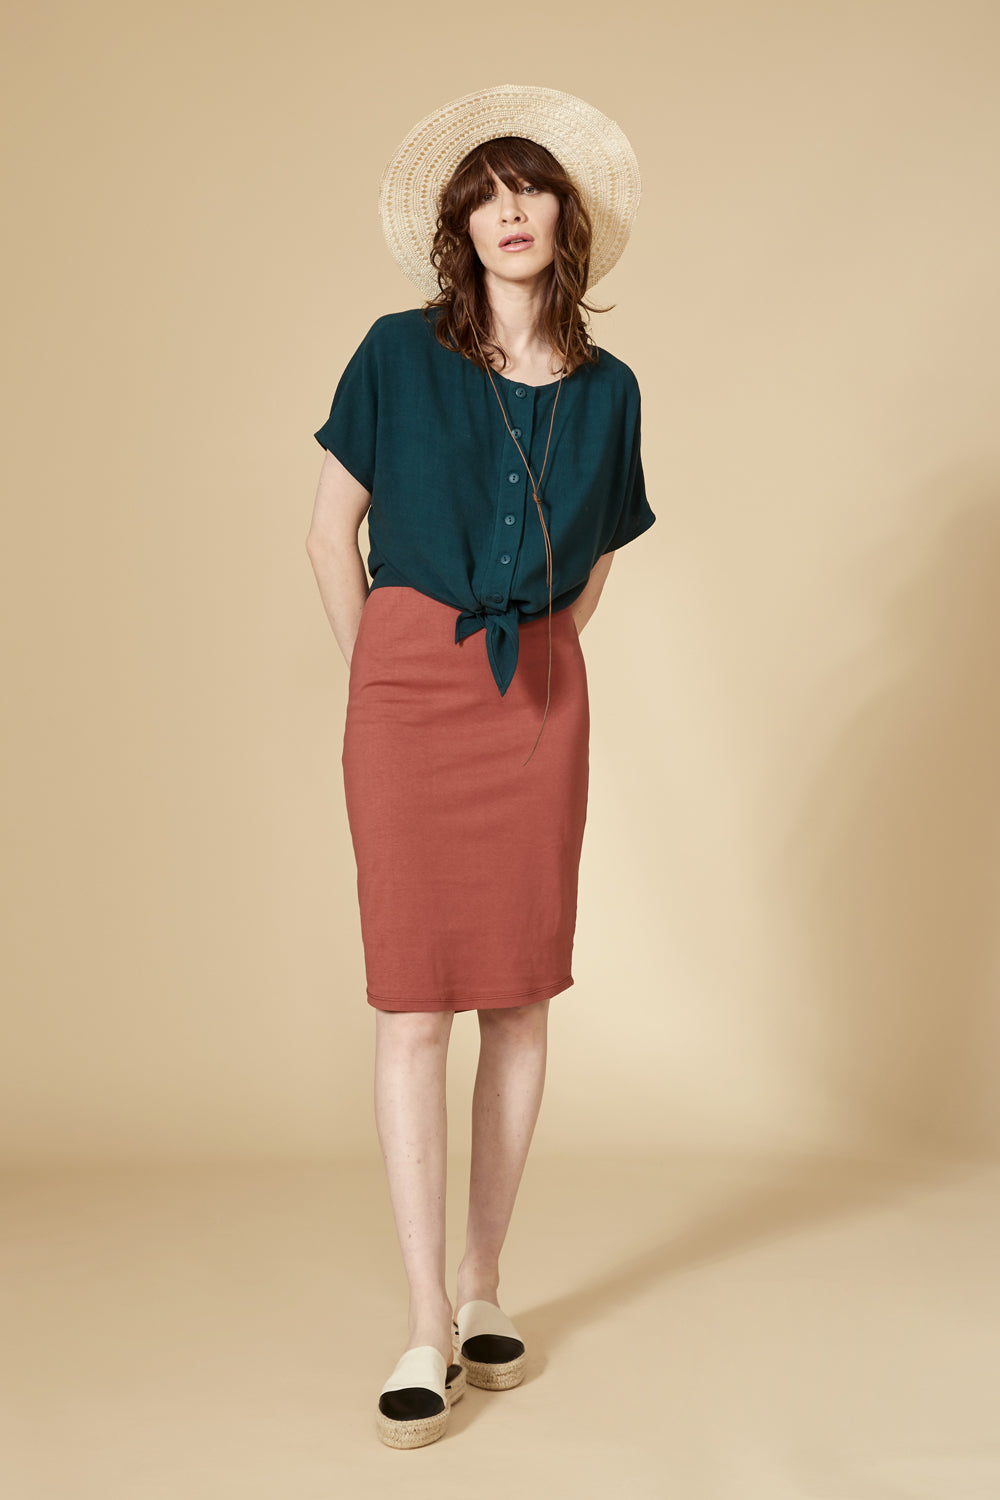 Impala Top by Cokluch, Teal, reversible, buttons on one side, split hem, tails, short sleeves, sizes XS to L, made in Montreal